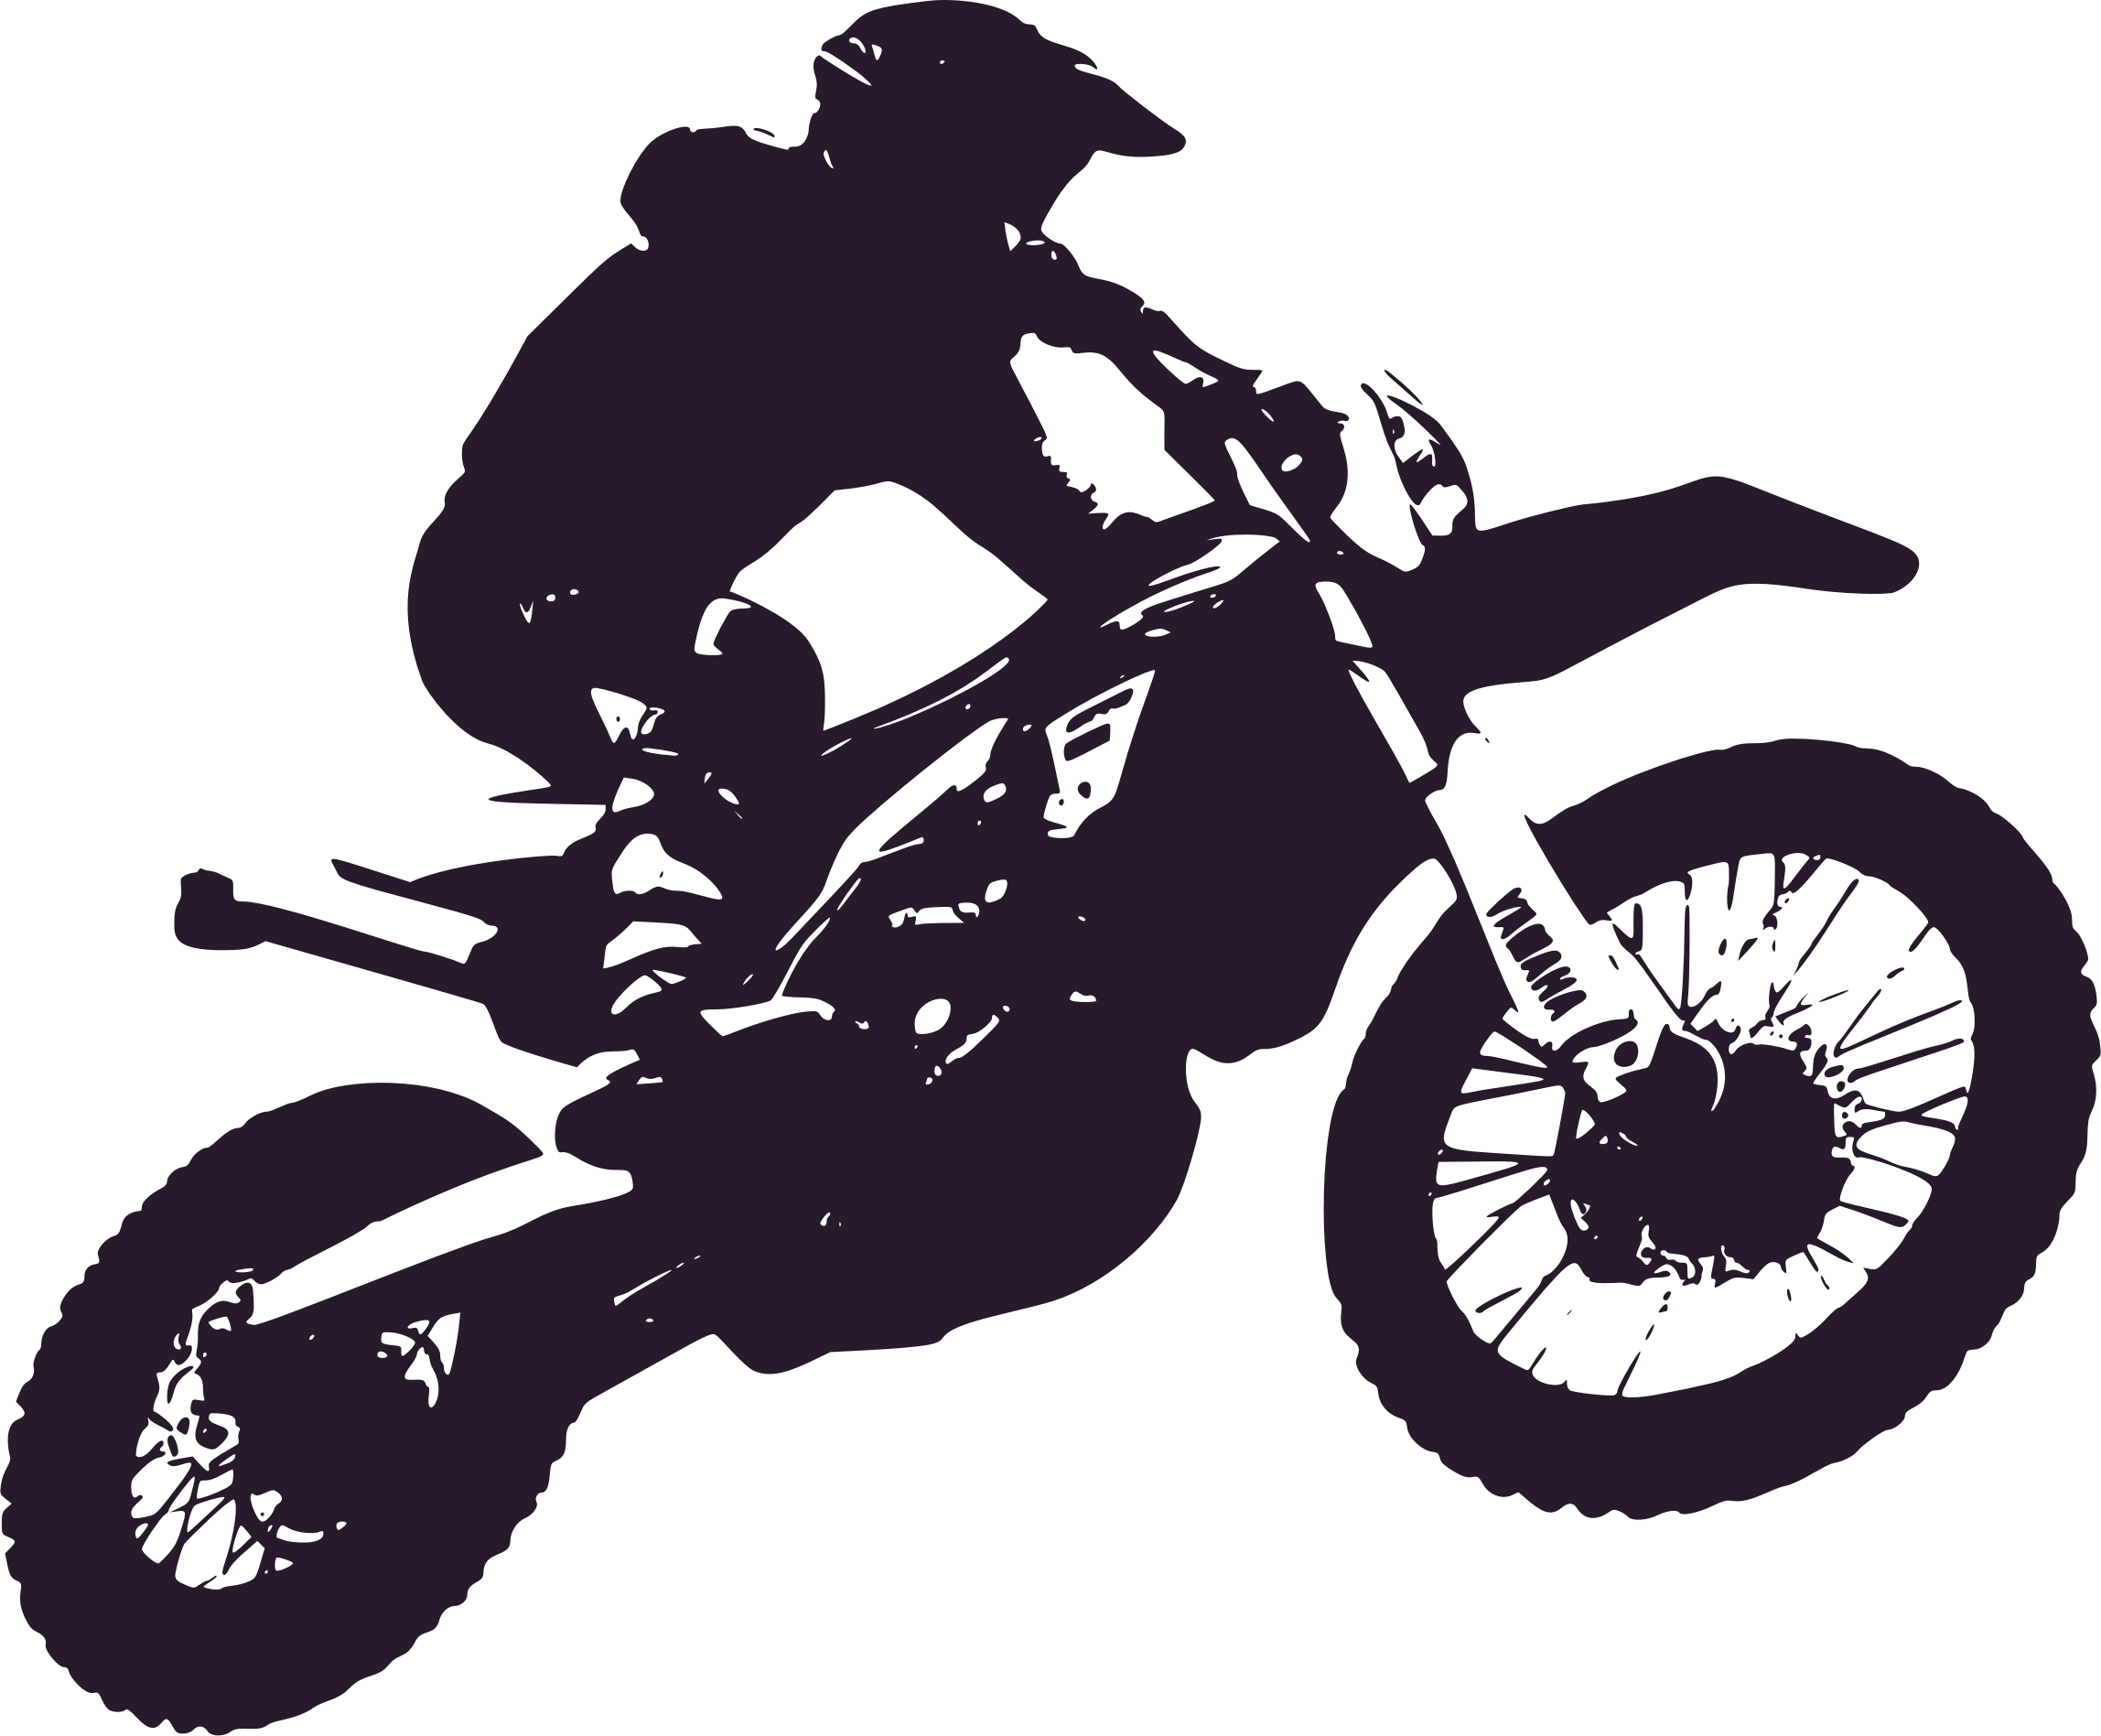 Motorbike enduro big image. Motorcycle clipart silhouette